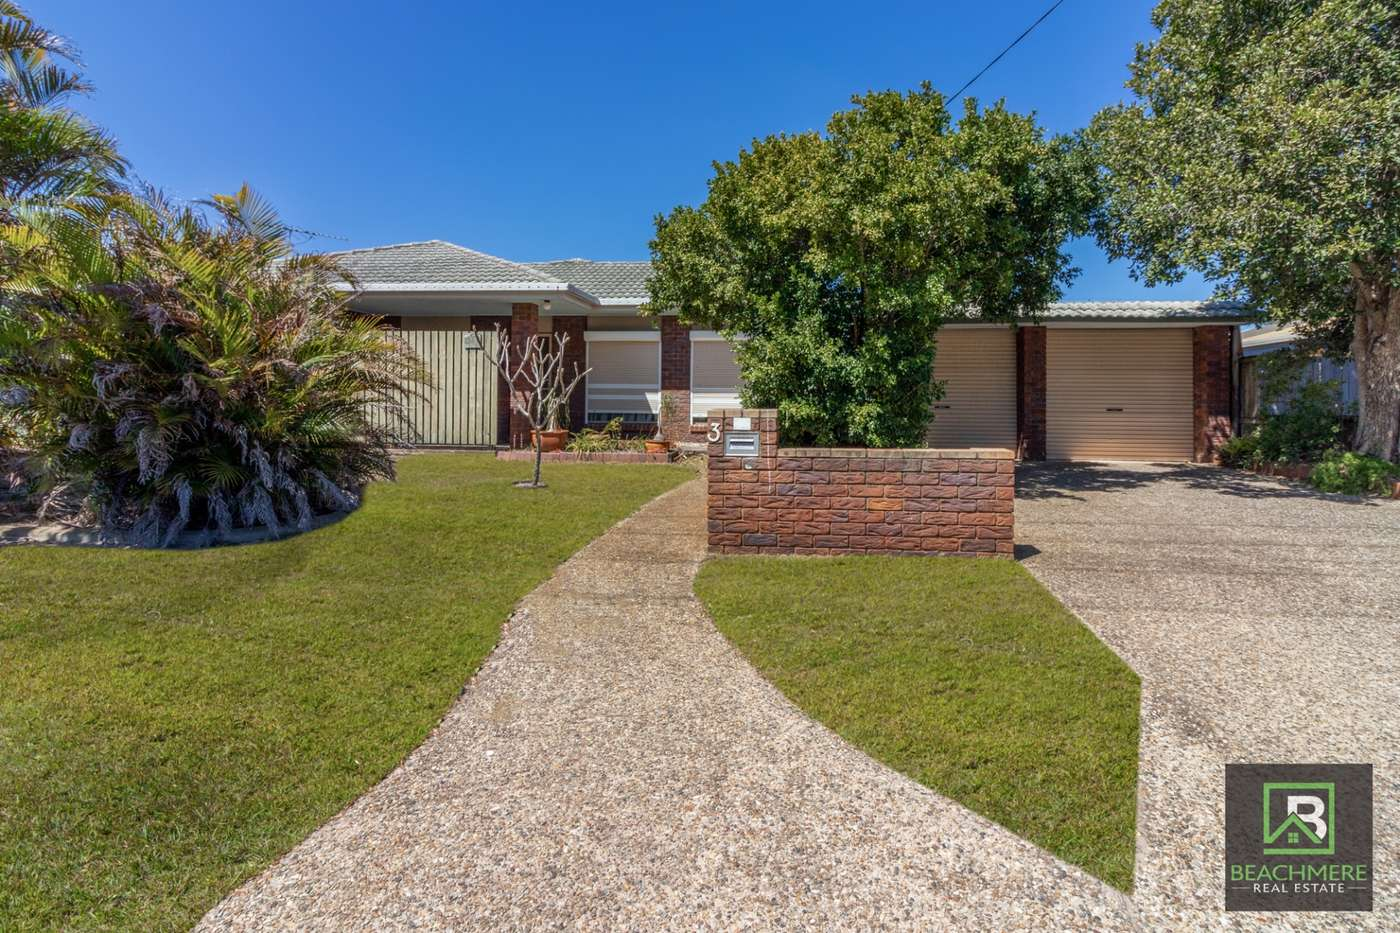 Main view of Homely house listing, 3 moatah Drive, Beachmere, QLD 4510